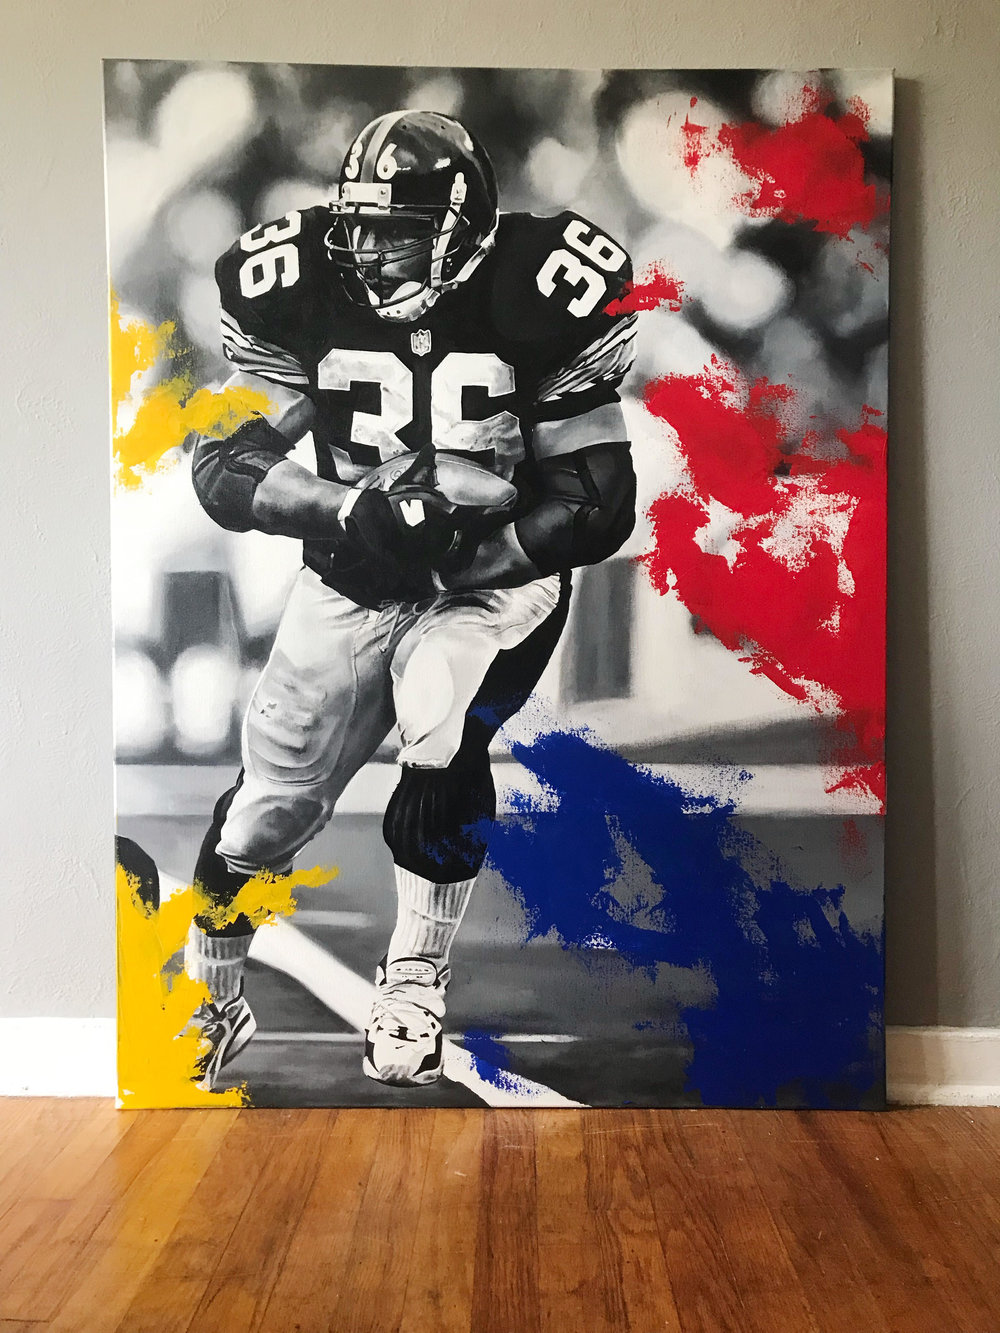 """36"" 3ftx4ft Acrylic on canvas"